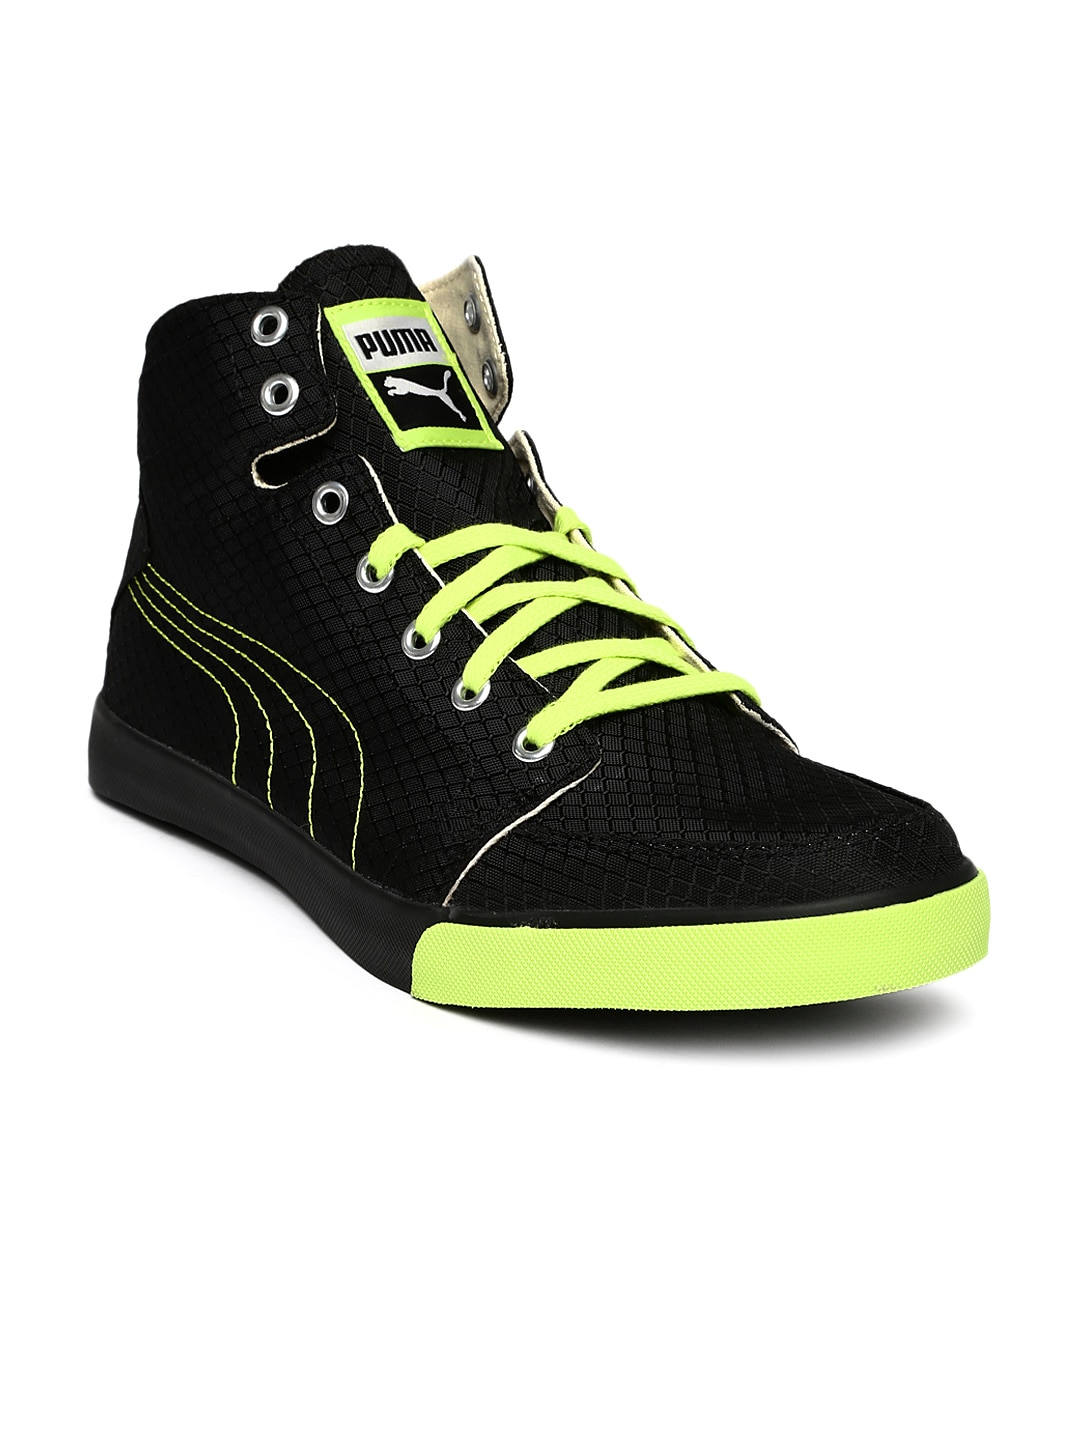 Puma Canvas Casual Shoes - Buy Puma Canvas Casual Shoes online in India b260bdfd1